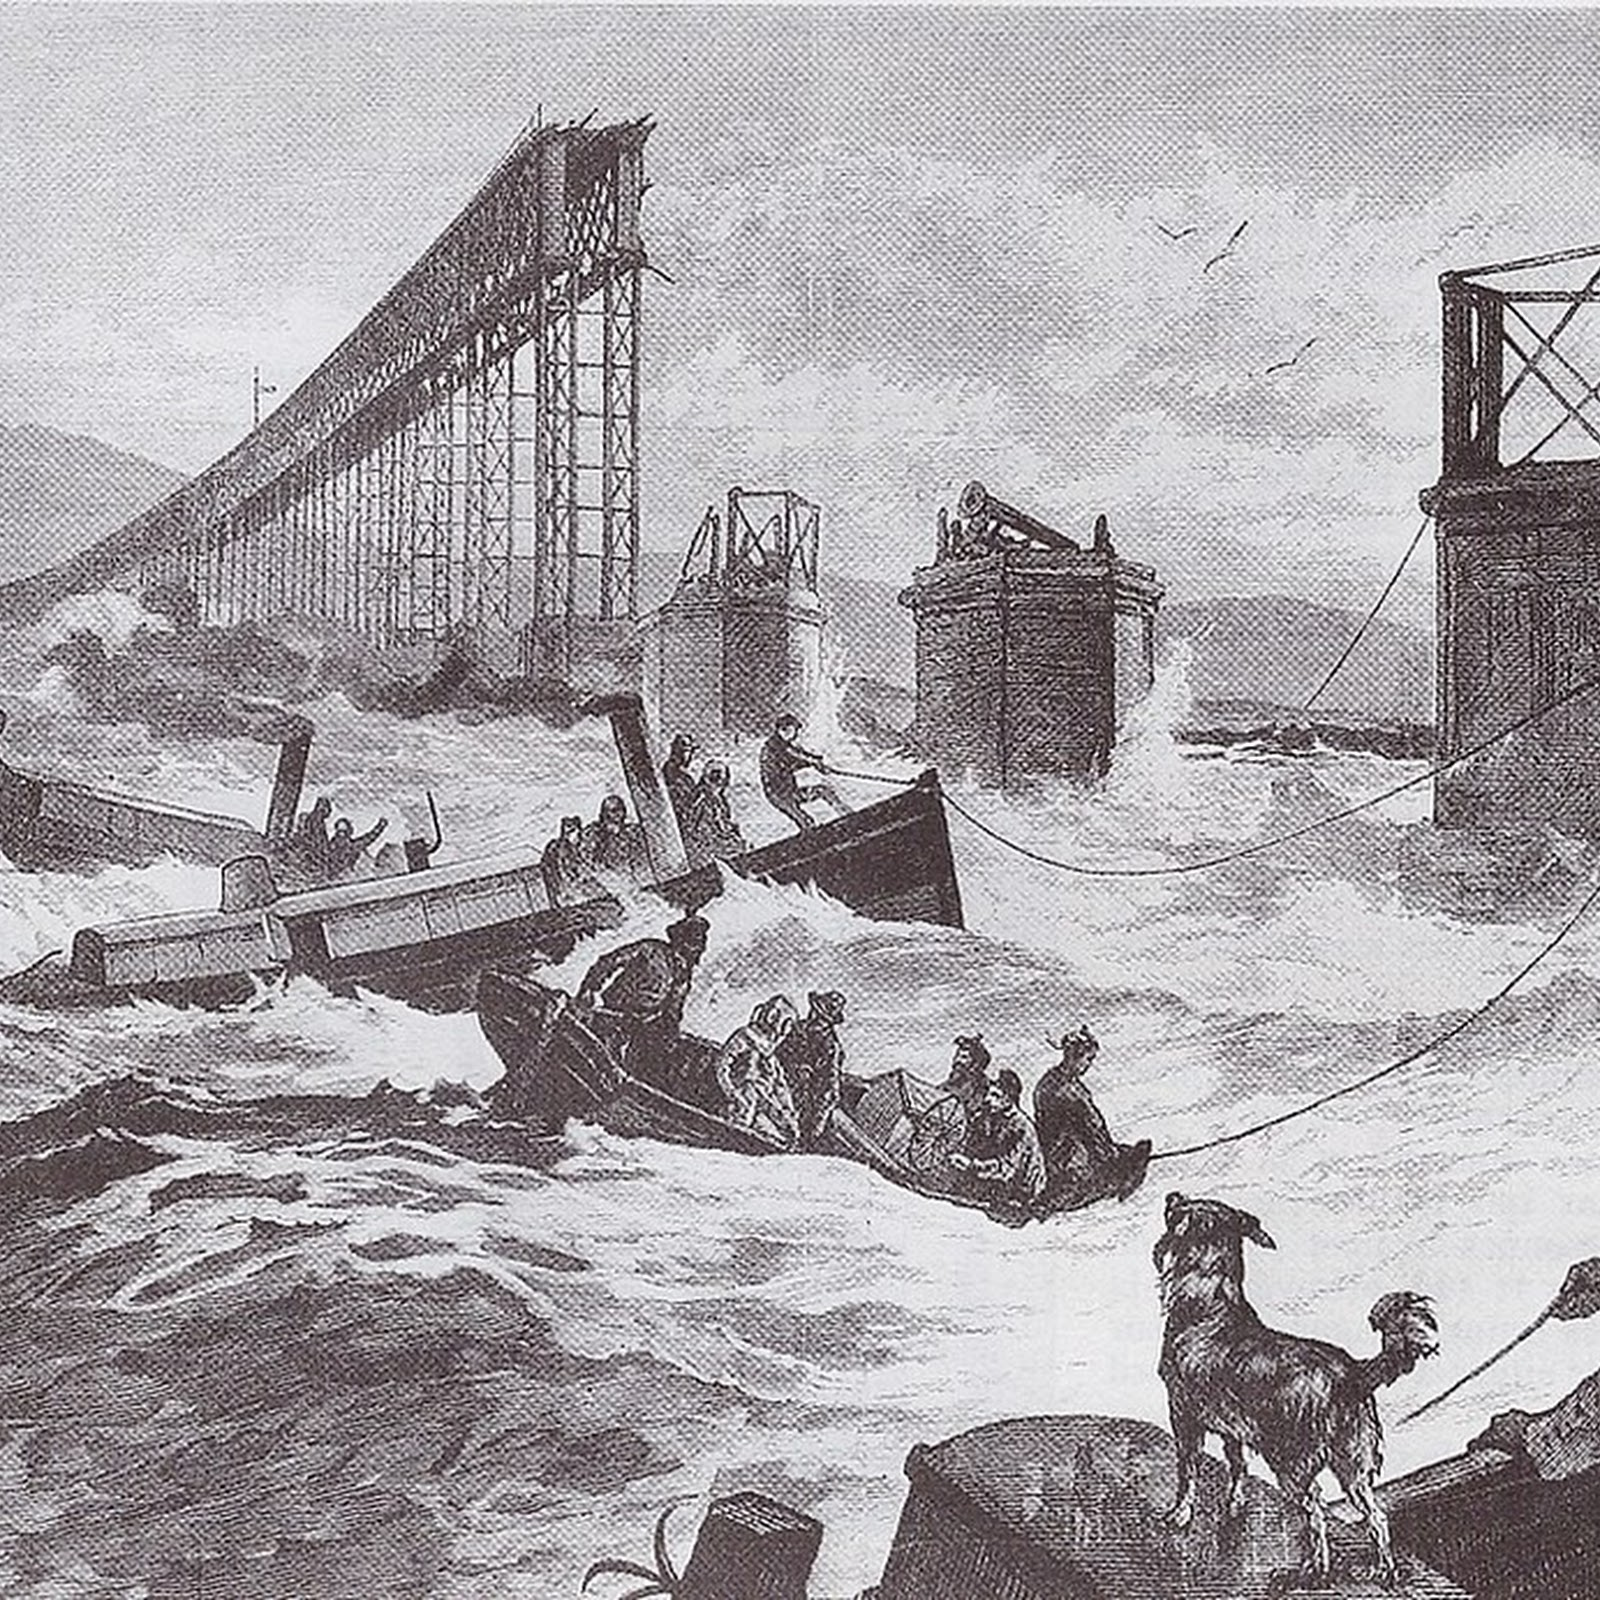 The Tay Bridge Disaster And The World's Worst Poem